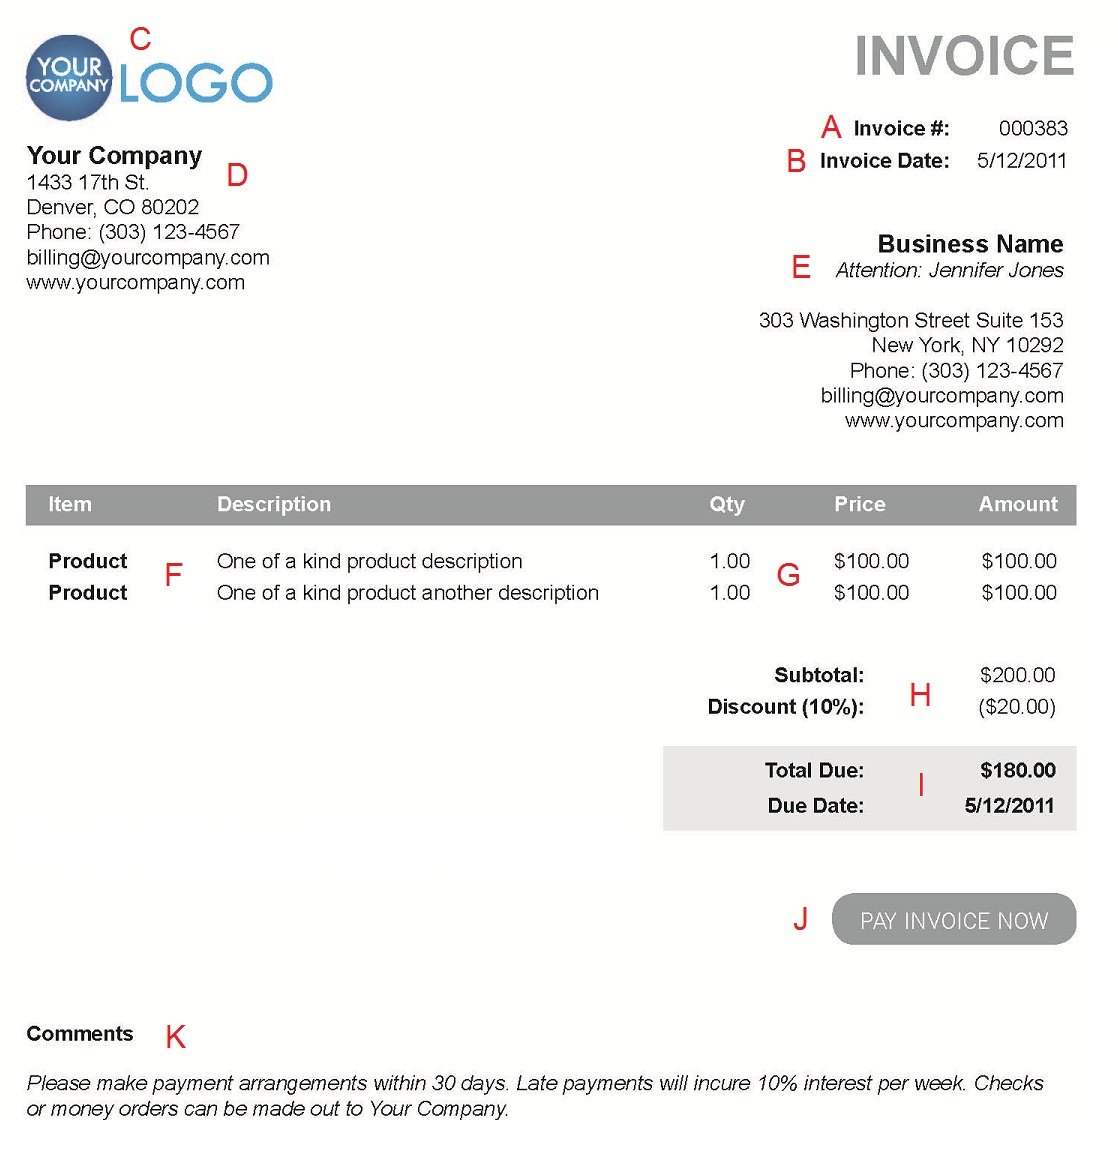 Poorboyzjeepclubus  Unusual The  Different Sections Of An Electronic Payment Invoice With Interesting A  With Amusing Car Rental Invoice Sample Also Electrical Contractor Invoice Template In Addition Express Invoice Download And How To Do Invoicing As Well As Free Invoice Templates Online Additionally Corporate Invoice Template From Paysimplecom With Poorboyzjeepclubus  Interesting The  Different Sections Of An Electronic Payment Invoice With Amusing A  And Unusual Car Rental Invoice Sample Also Electrical Contractor Invoice Template In Addition Express Invoice Download From Paysimplecom